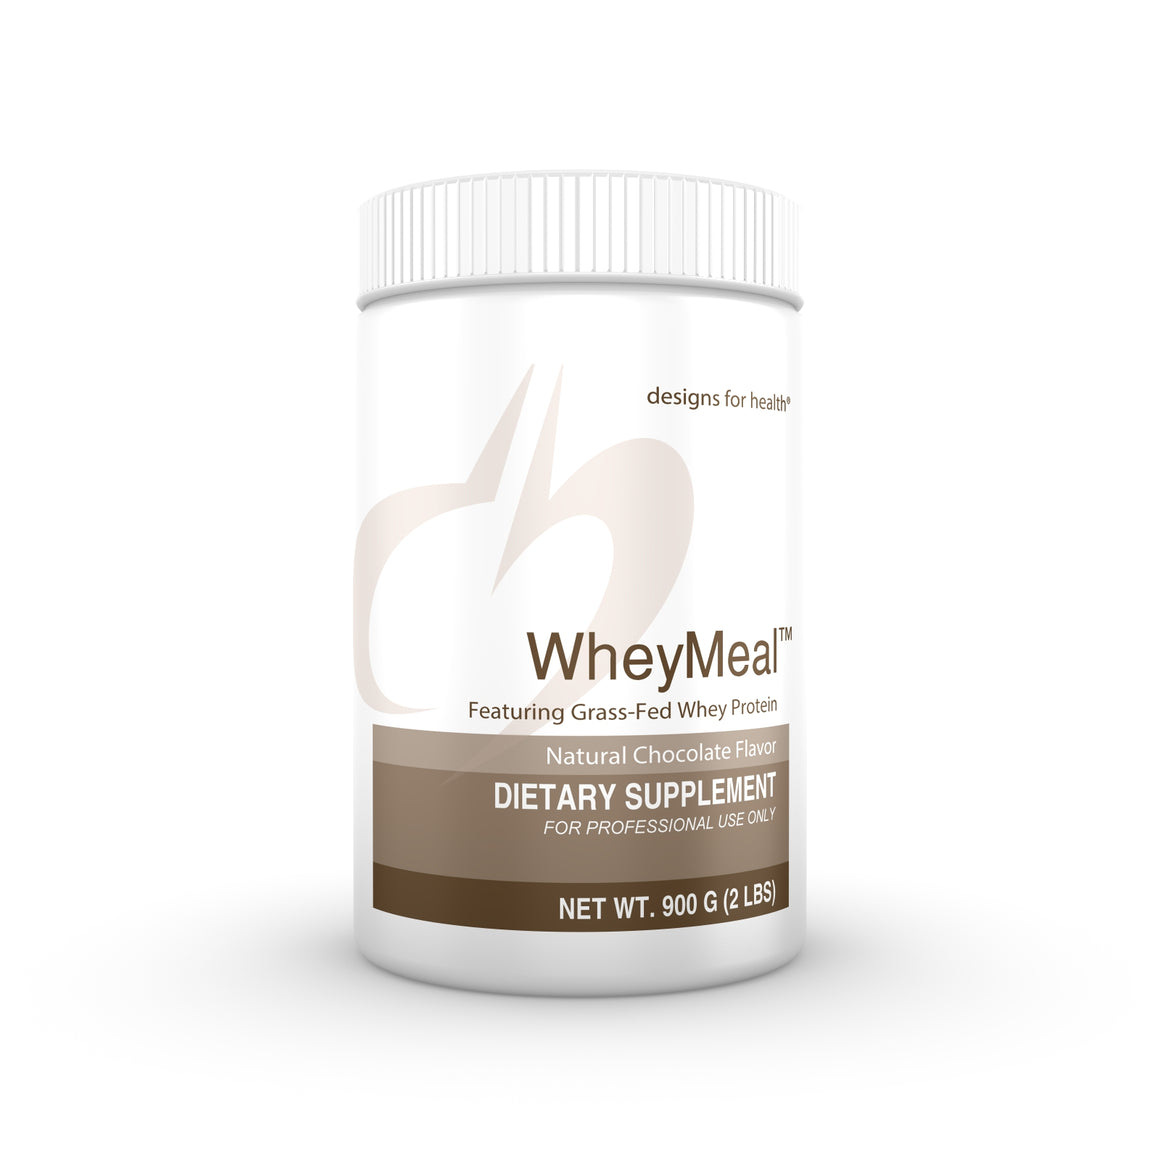 WheyMeal by Designs for Health